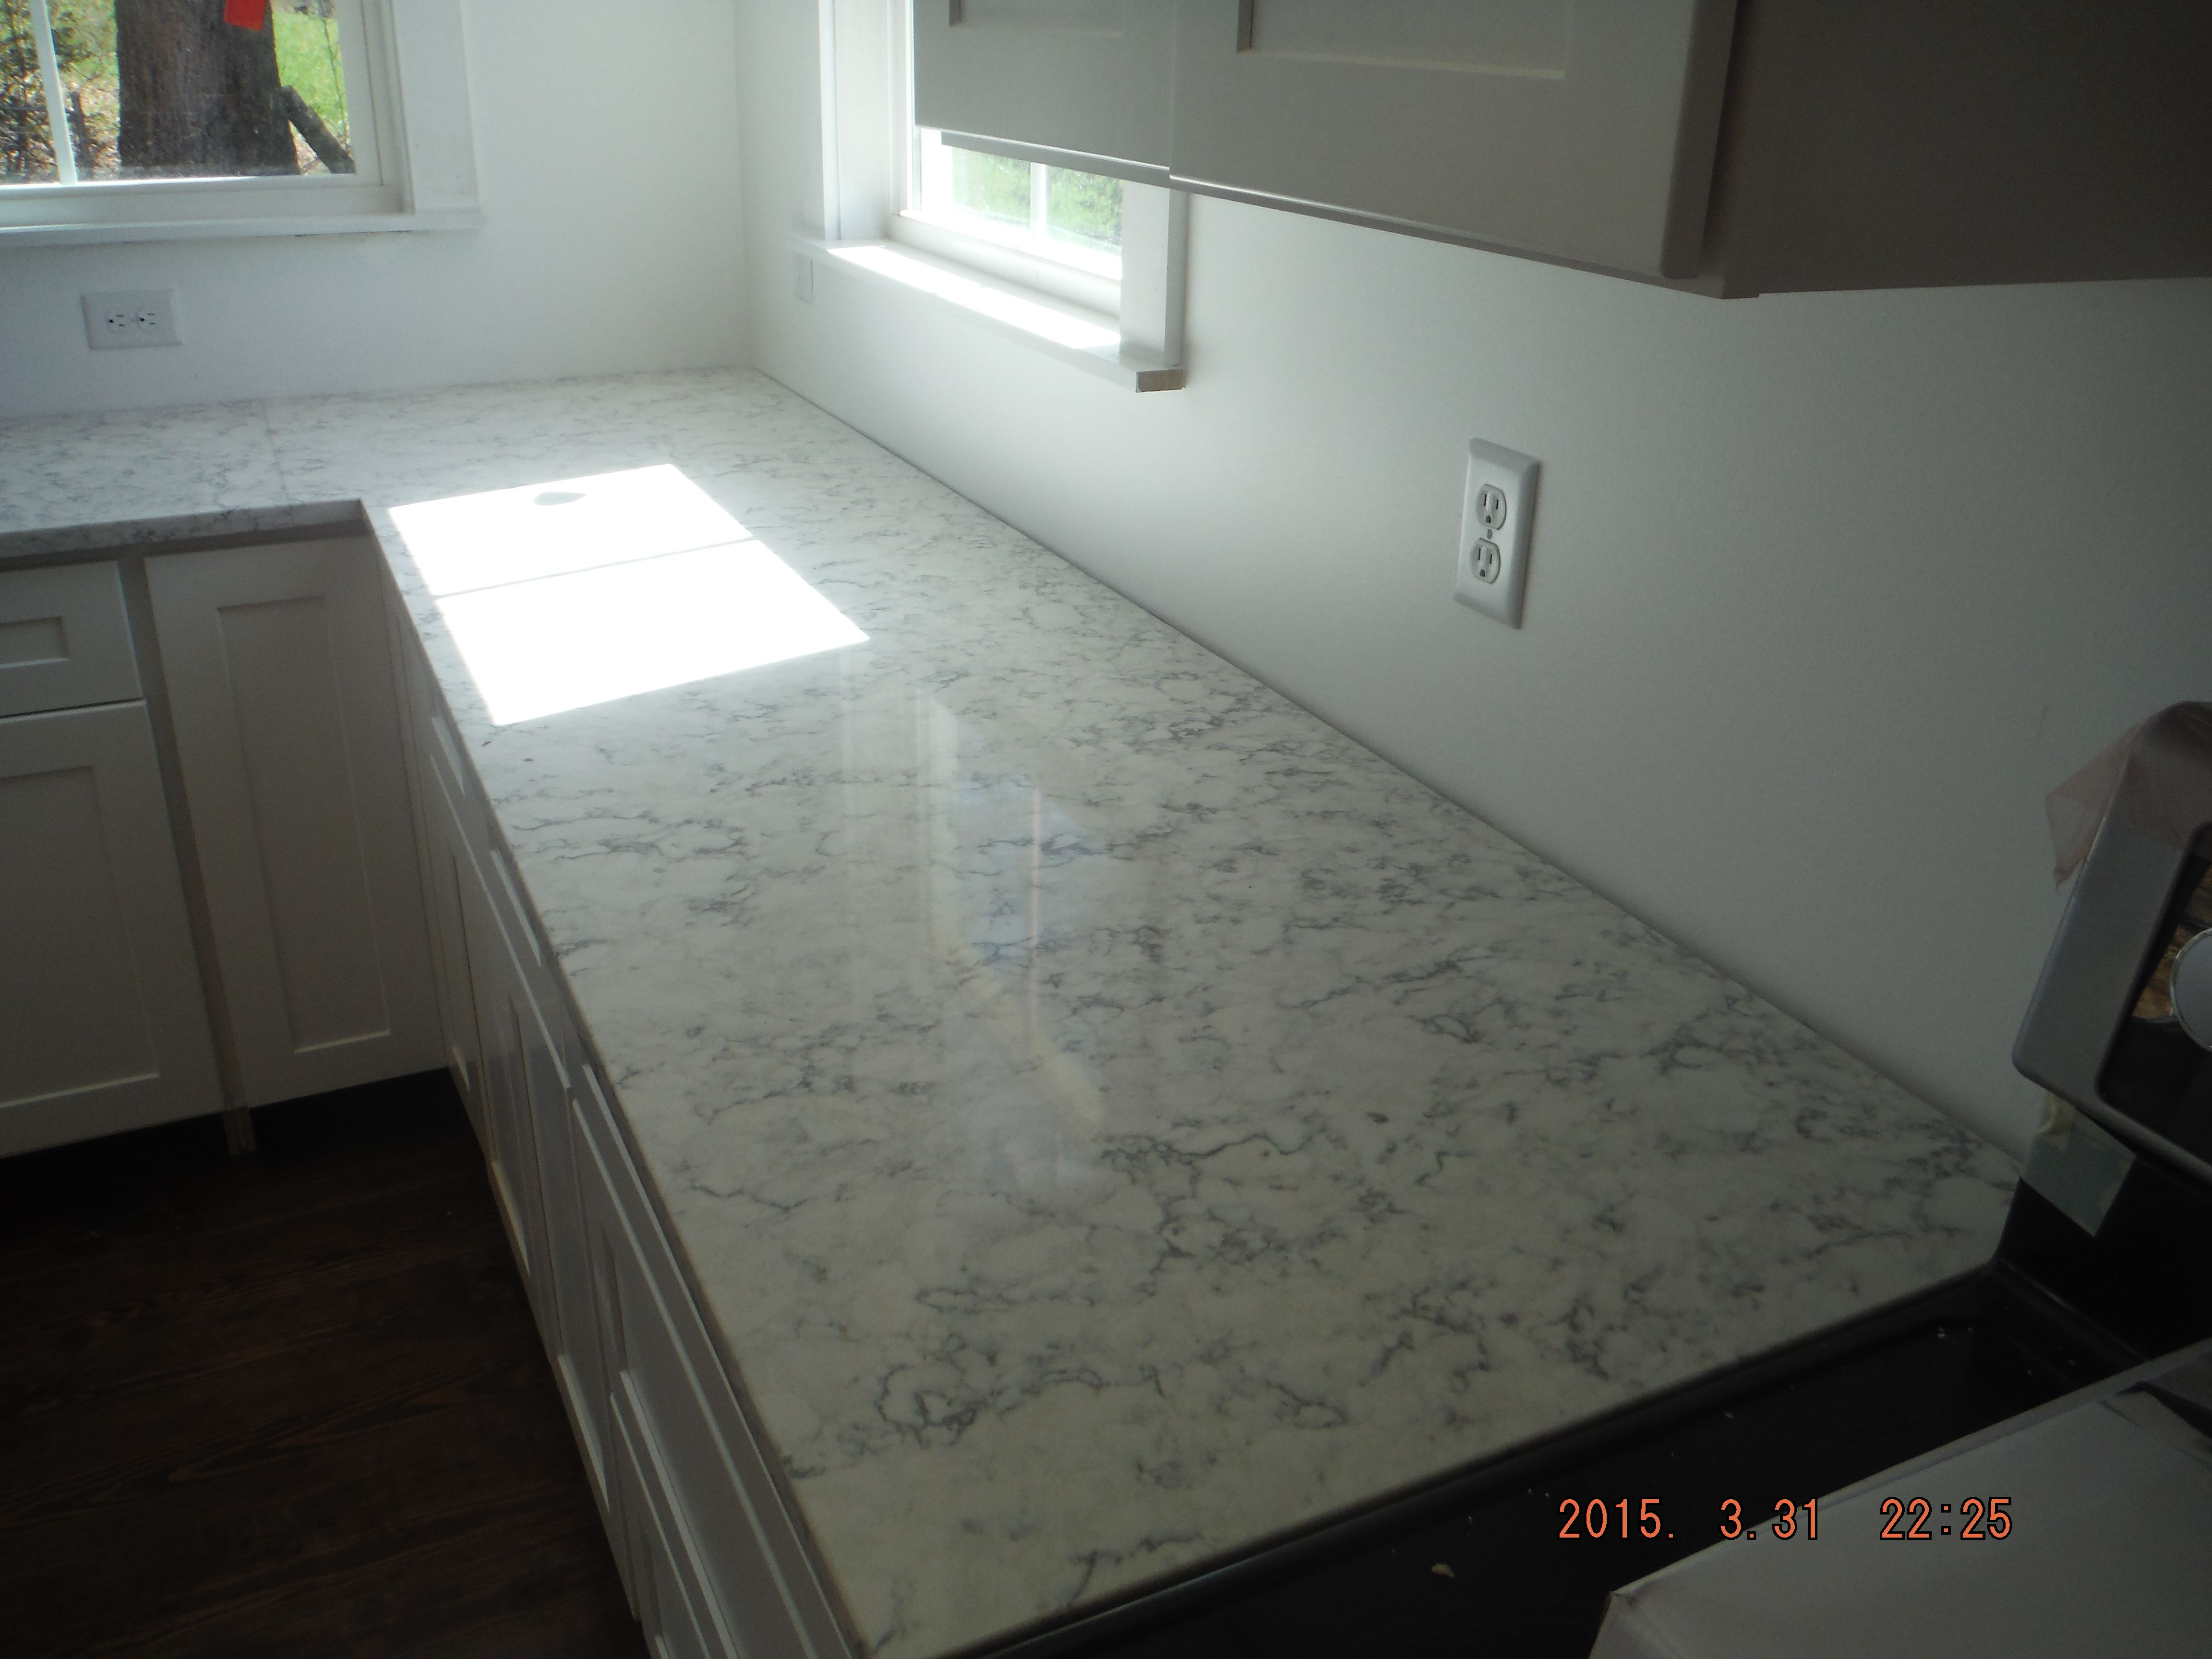 How Much Are Quartz Countertops Installed Rococo Lg Viatera Quartz Kitchen Countertop Install For